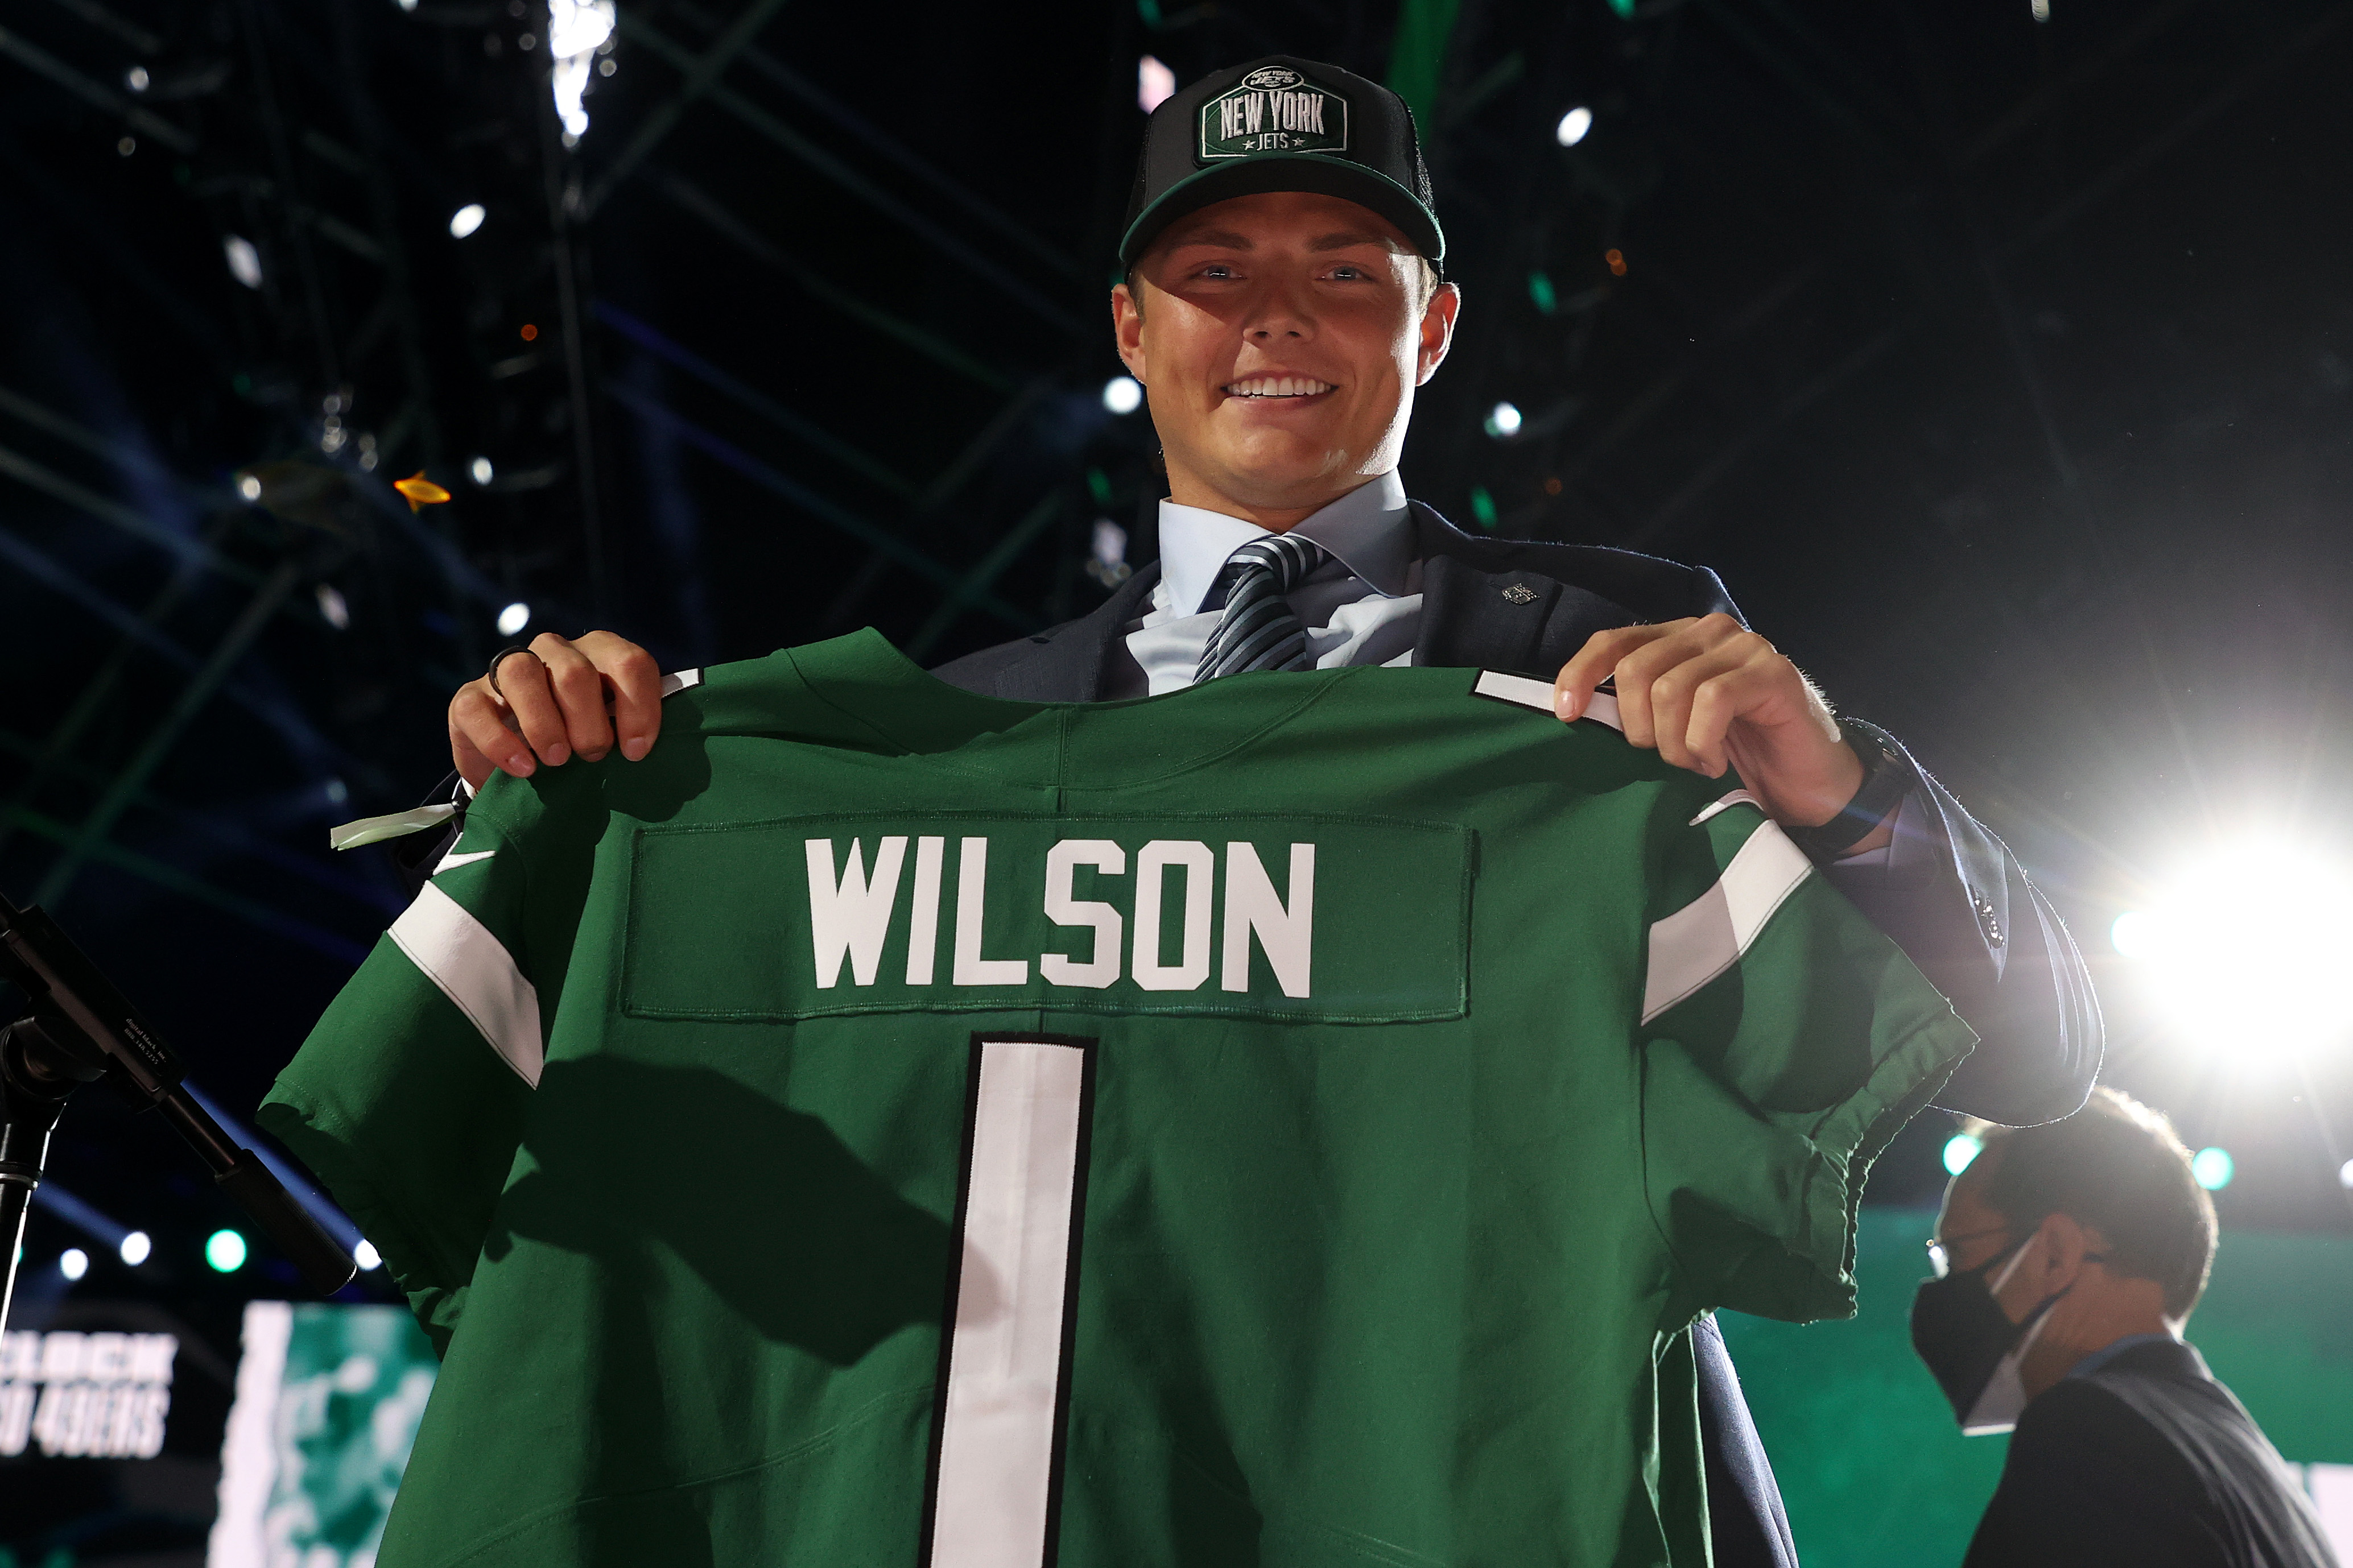 Zach Wilson holds a jersey onstage after being drafted second by the New York Jets during round one of the 2021 NFL Draft at the Great Lakes Science Center on April 29, 2021 in Cleveland, Ohio.